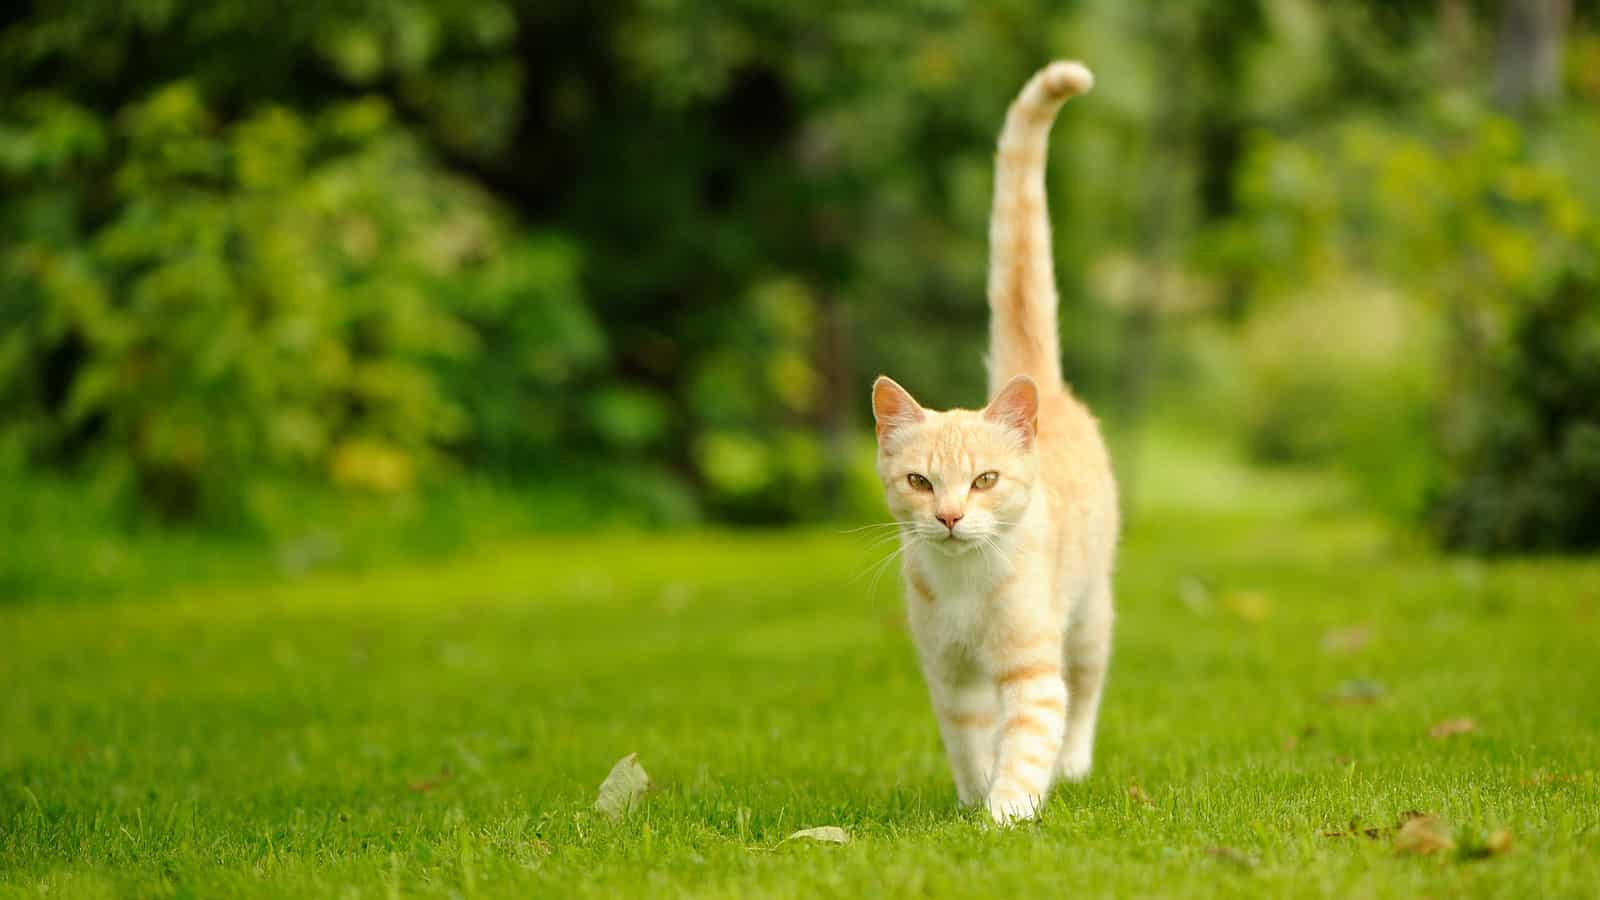 cat walking with tail up